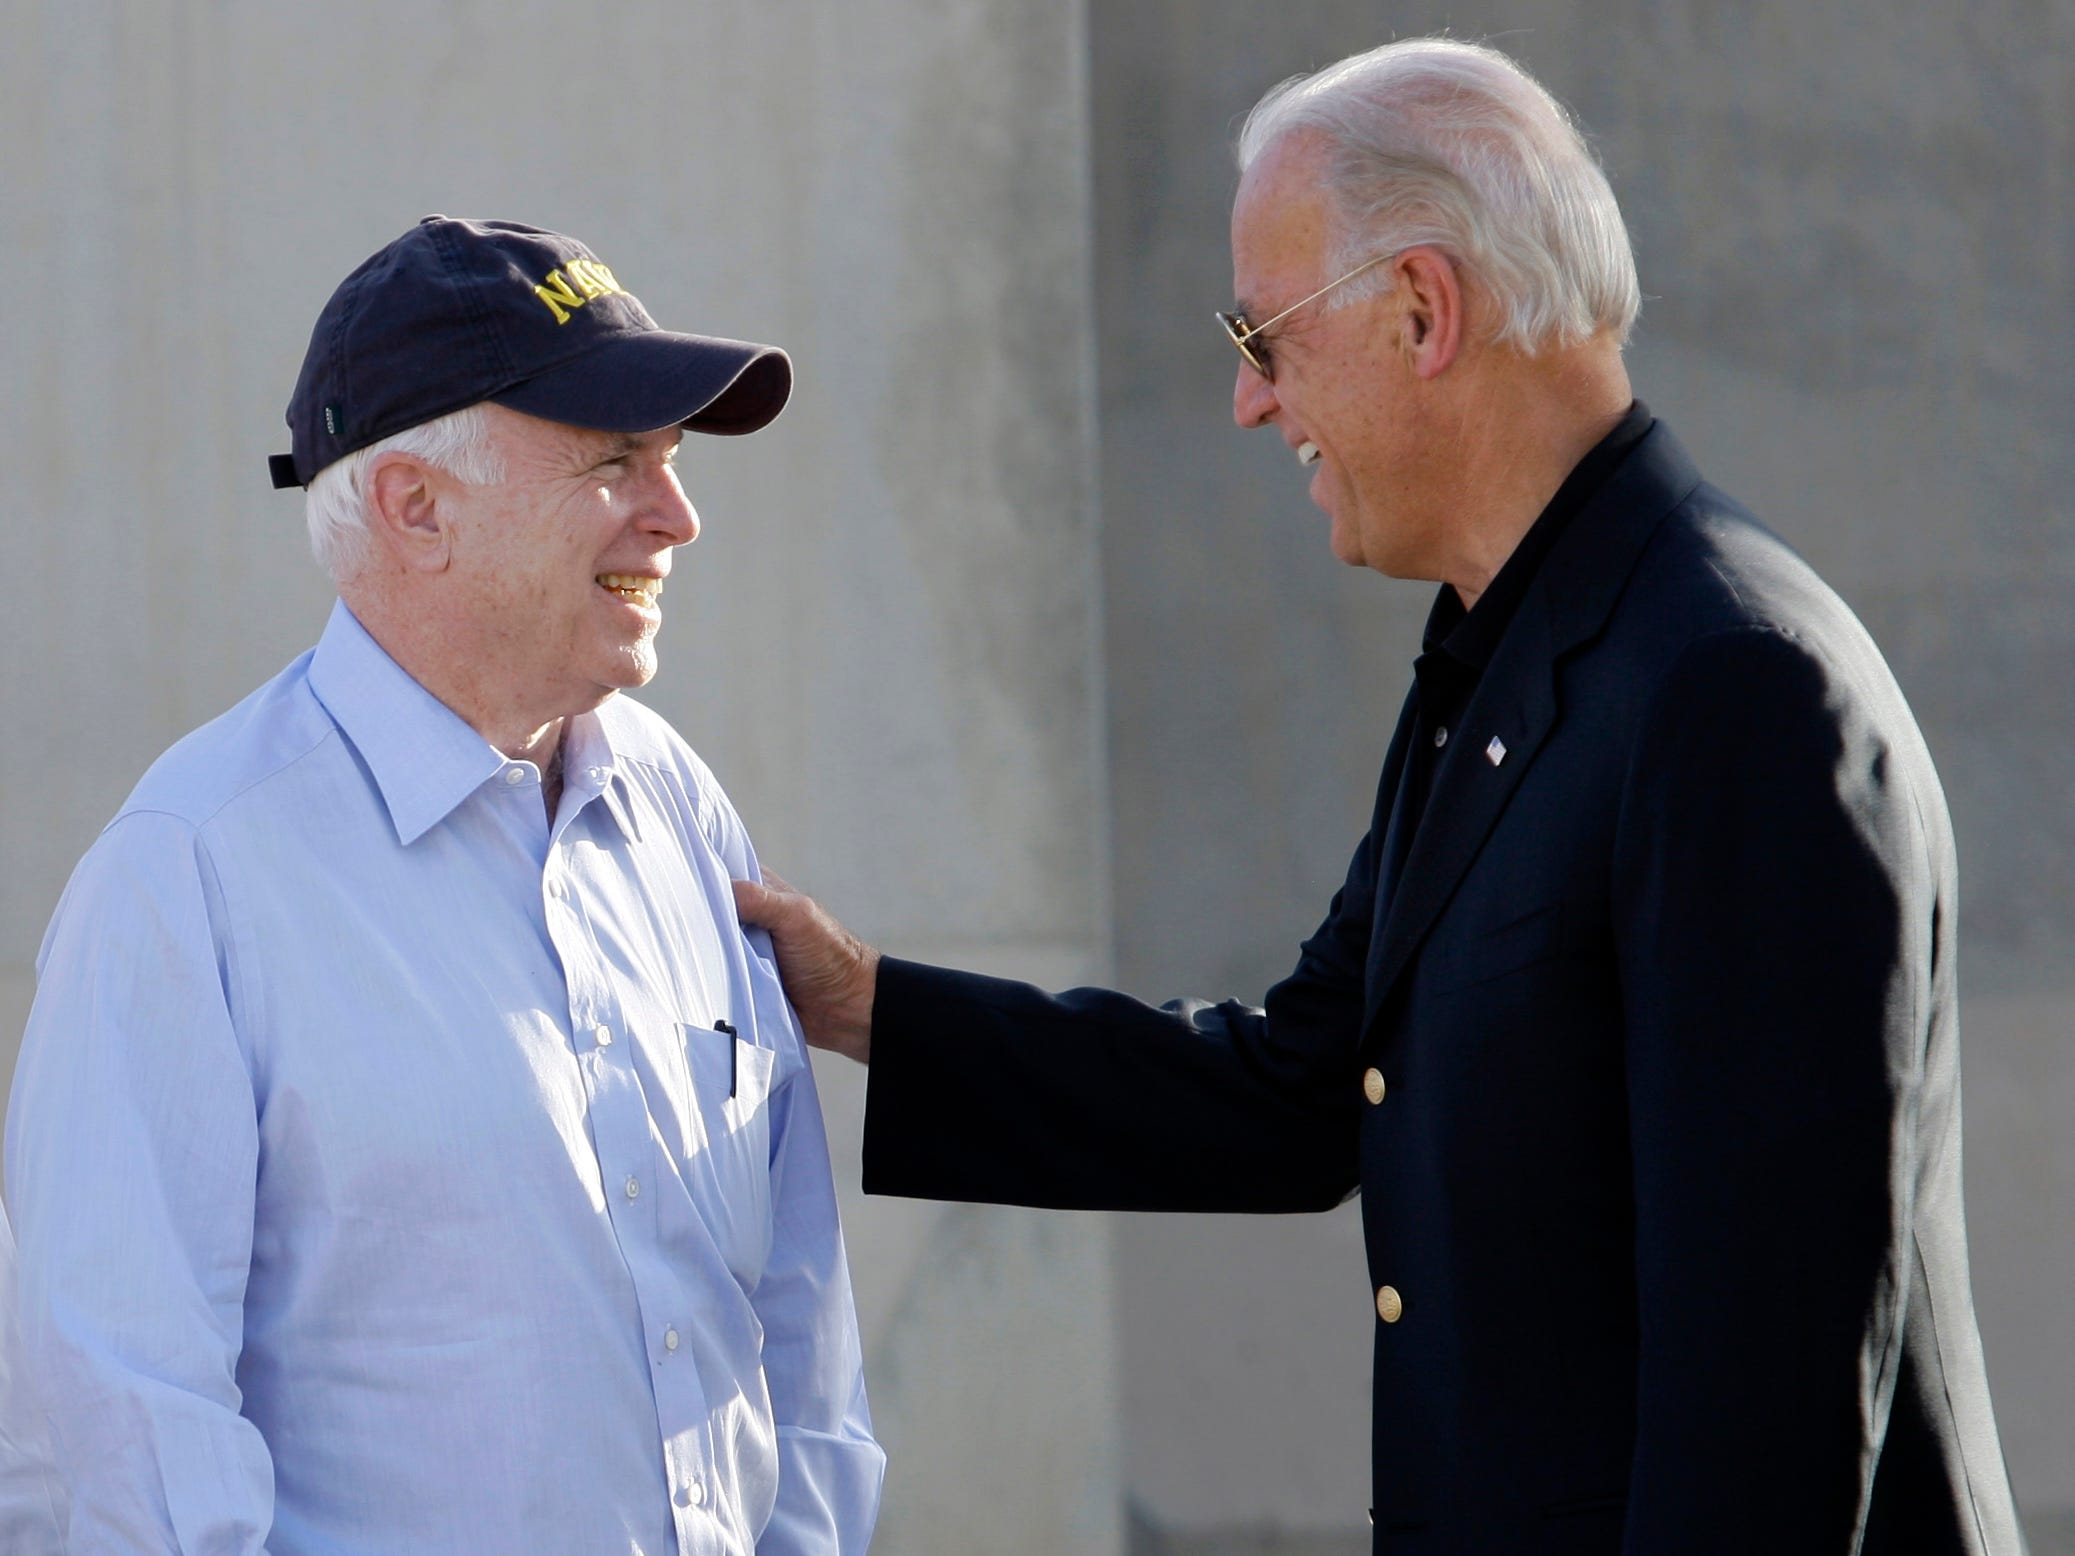 ORG XMIT: BAG105 U.S. Sen. John McCain, left, and Vice President Joe Biden, right, share a light moment after Biden's arrival in Baghdad, Iraq, Saturday, July 3, 2010. Vice President Joe Biden landed Saturday in Baghdad to coax Iraqi leaders into ending their government impasse as vying political factions remain deadlocked over which political bloc should pick its new leaders, including prime minister. High ranking U.S. senators _ Republicans John McCain from Arizona and Lindsey Graham from South Carolina, as well as Joe Lieberman, an independent from Connecticut _ also met Biden at the Baghdad airport on Saturday. They are in Iraq on an unrelated trip and did not travel here with the vice president. (AP Photo/Hadi Mizban)